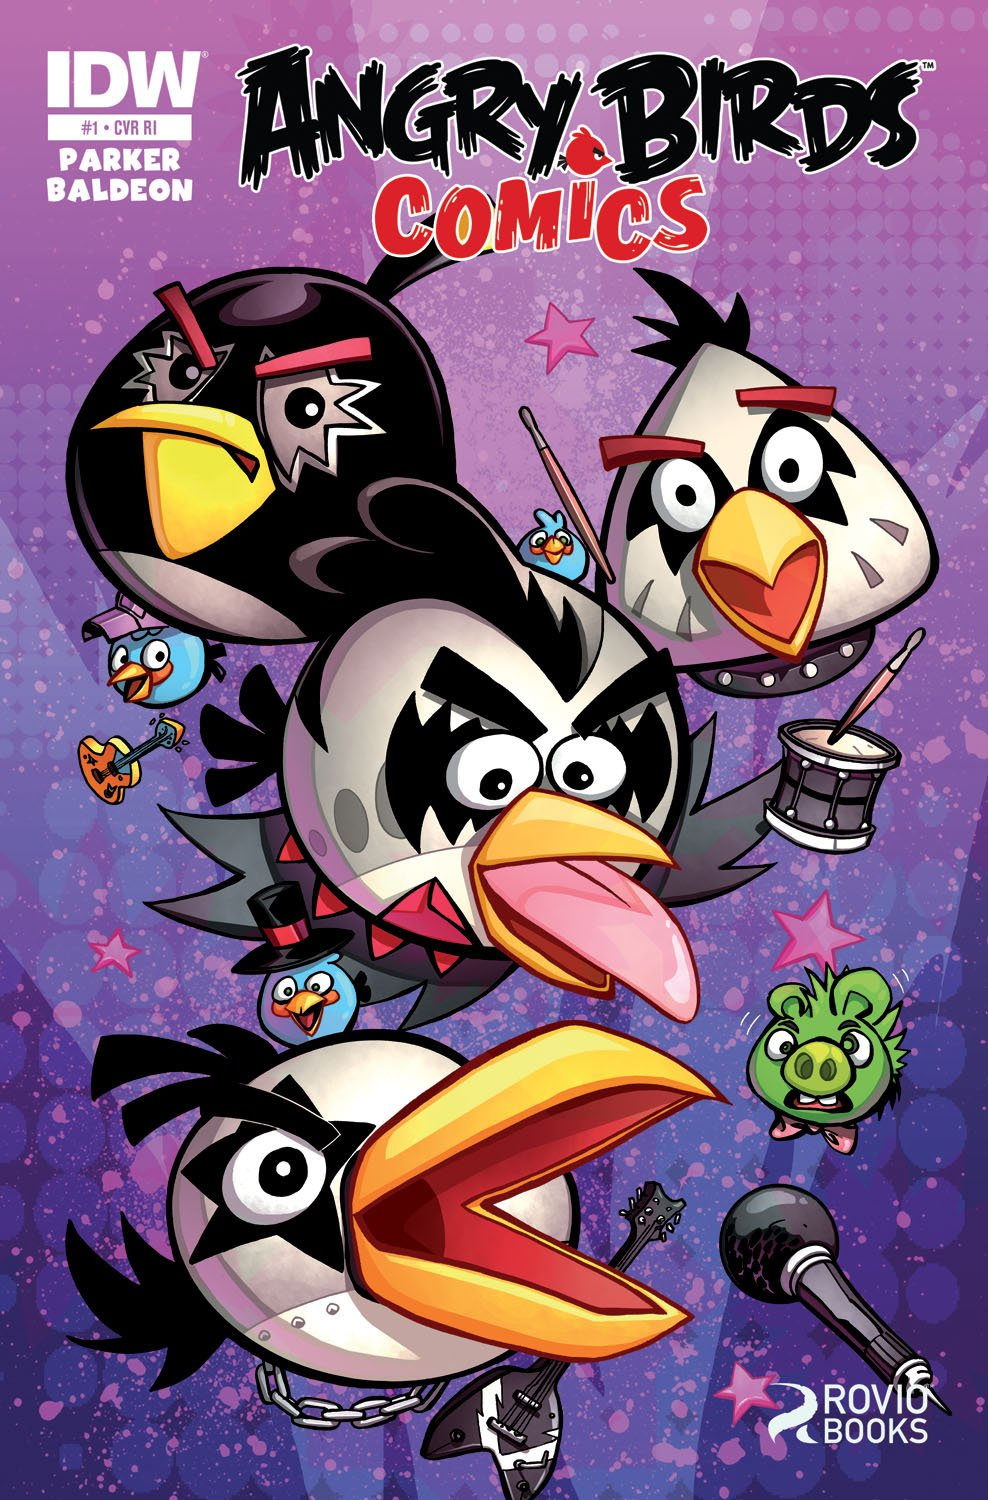 Angry Birds Comics 01 (June 2014) (retailer incentive cover)